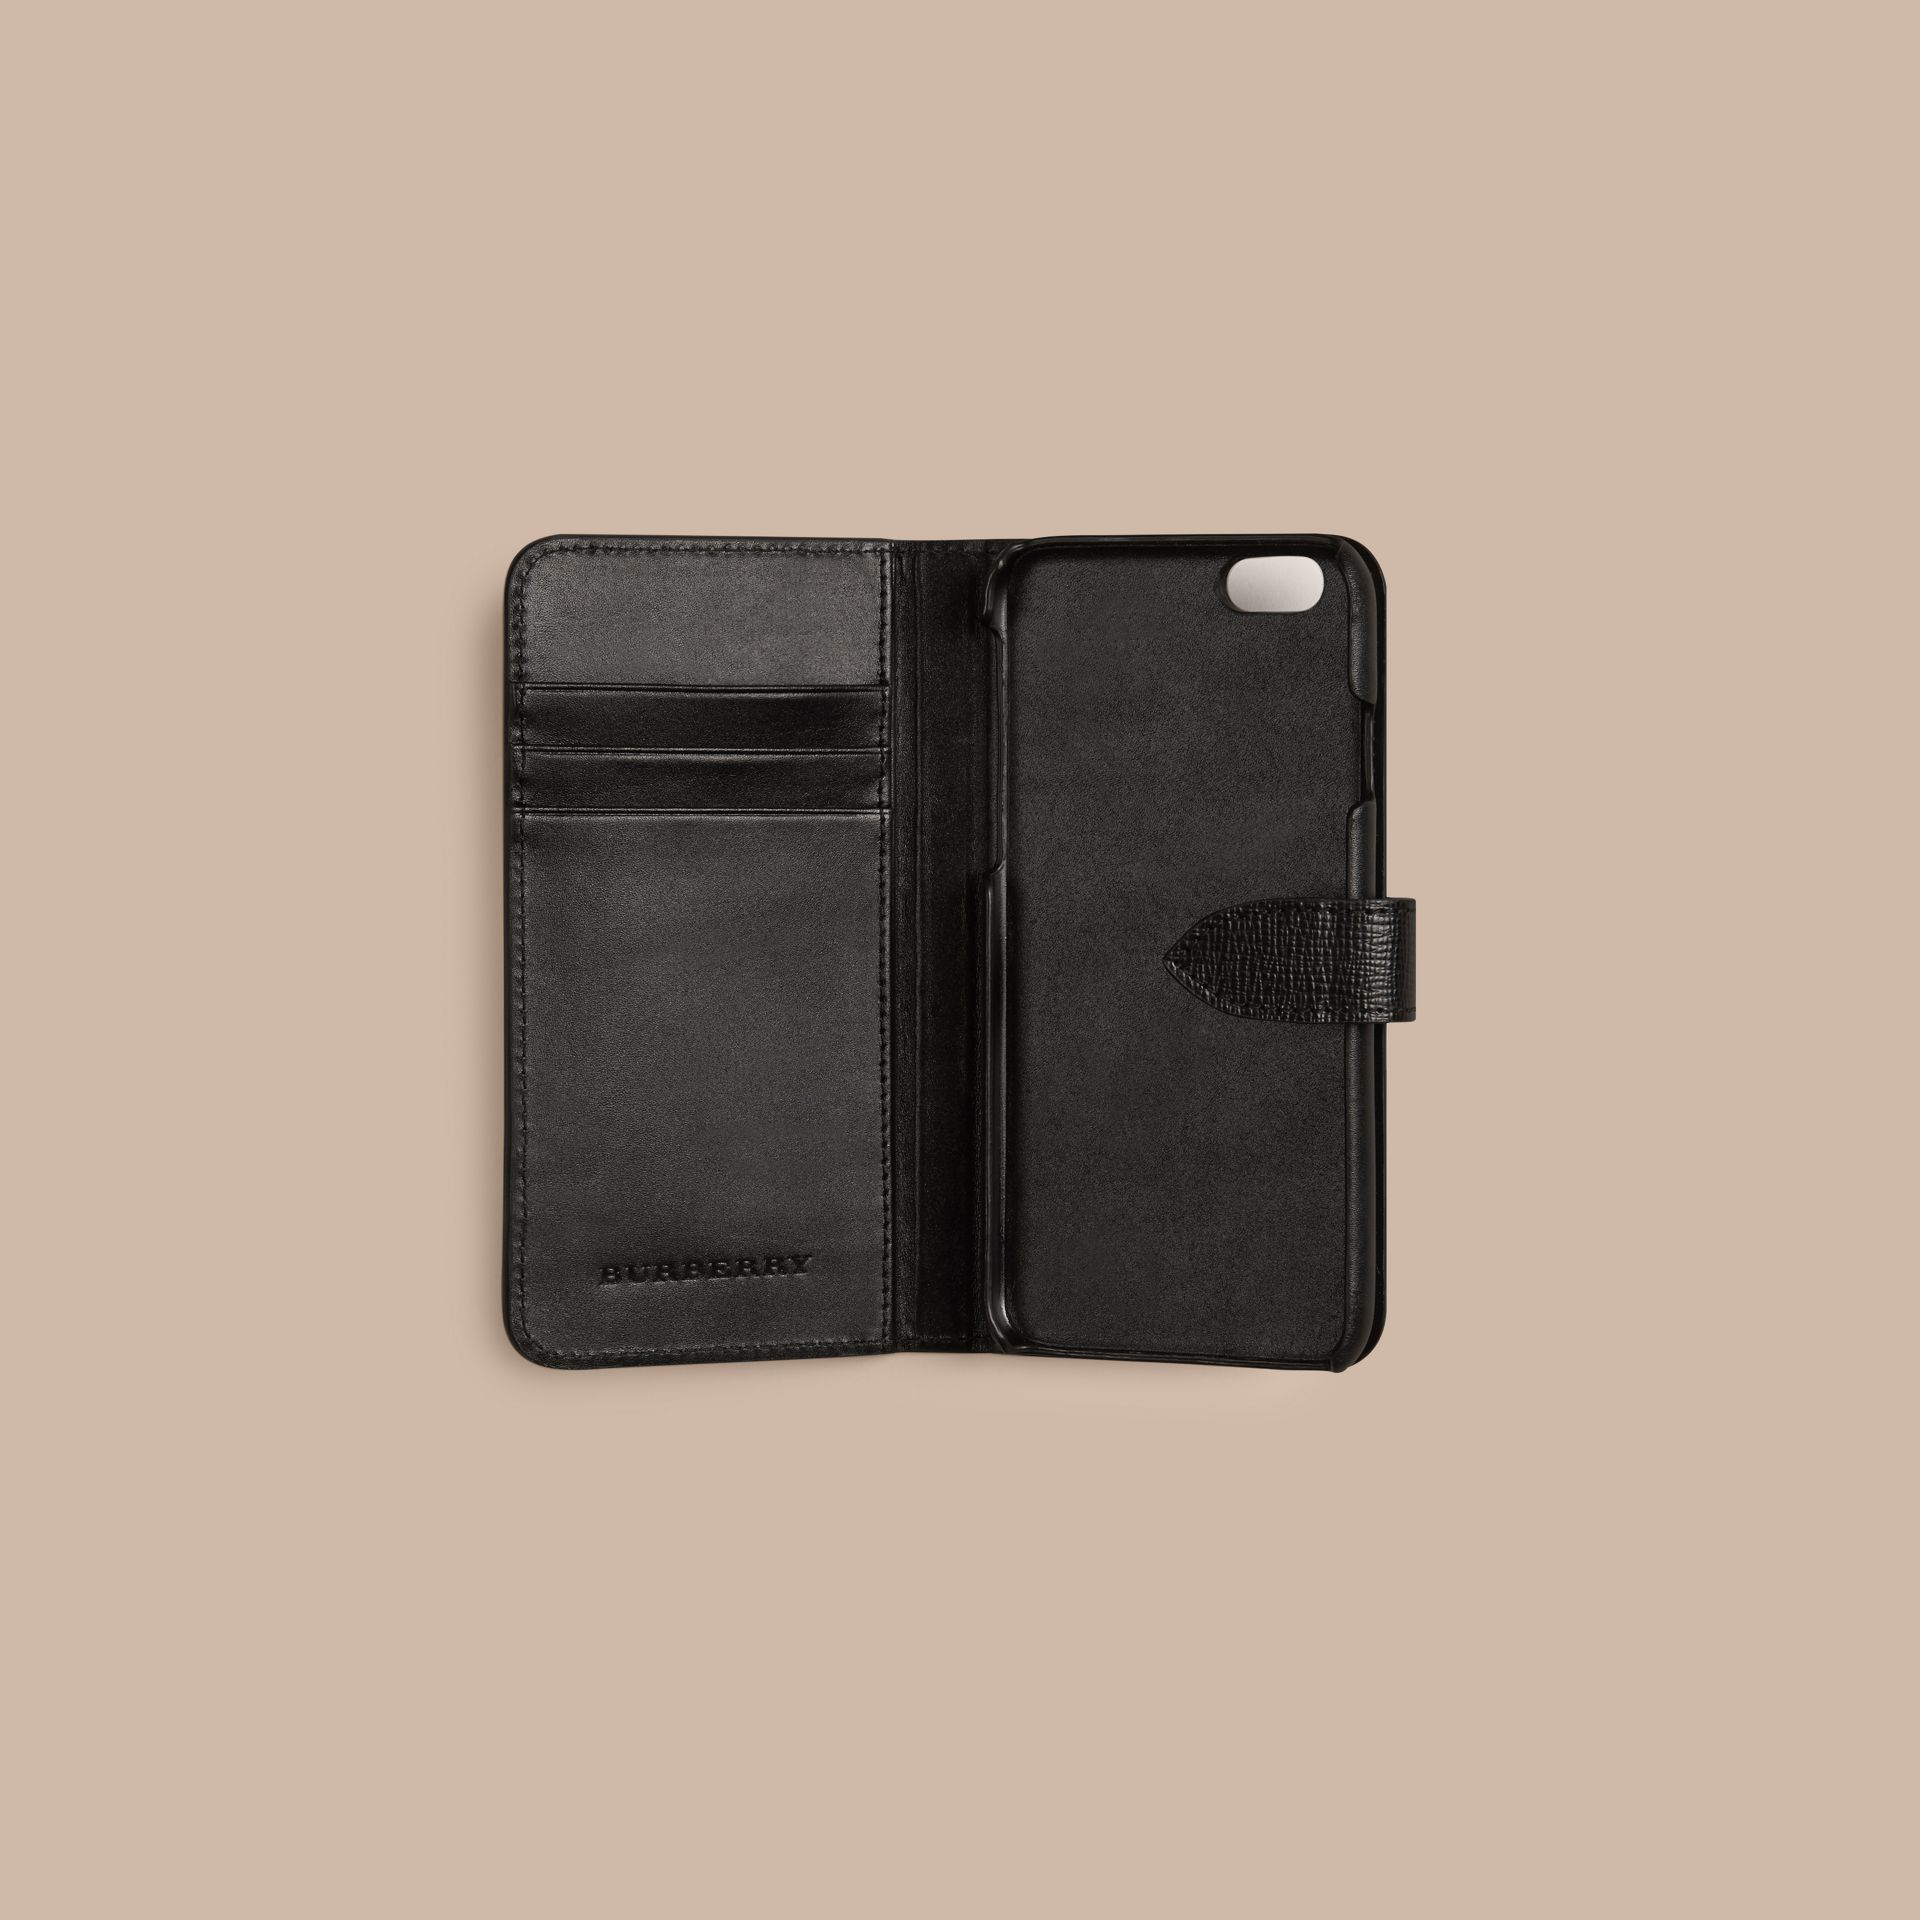 Nero Custodia a libro in pelle London per iPhone 6 Nero - immagine della galleria 2